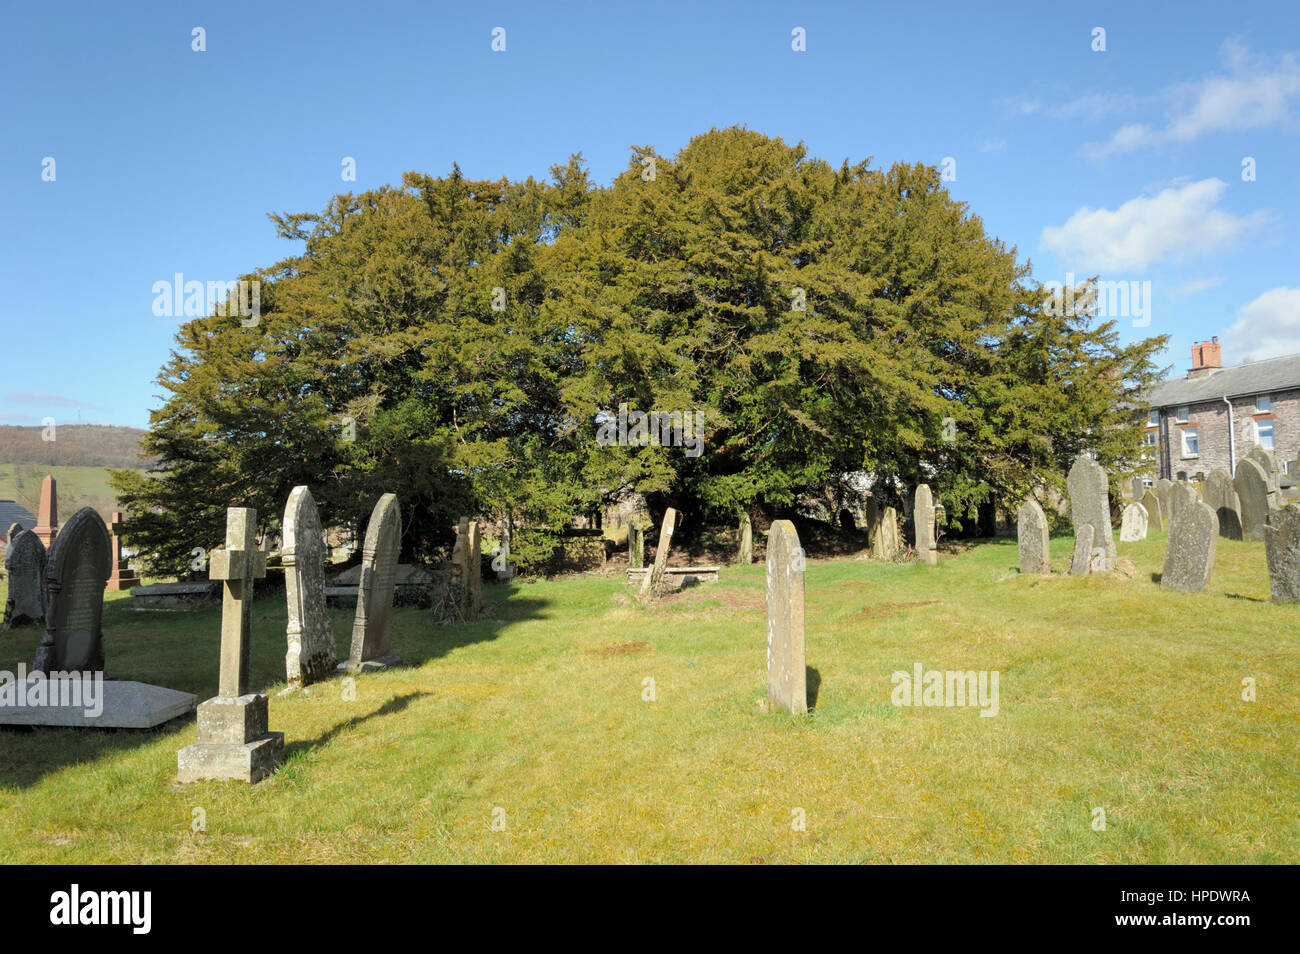 Yew, Taxus baccata, Thought to be over 5000 years old at Defynnog - Stock Image